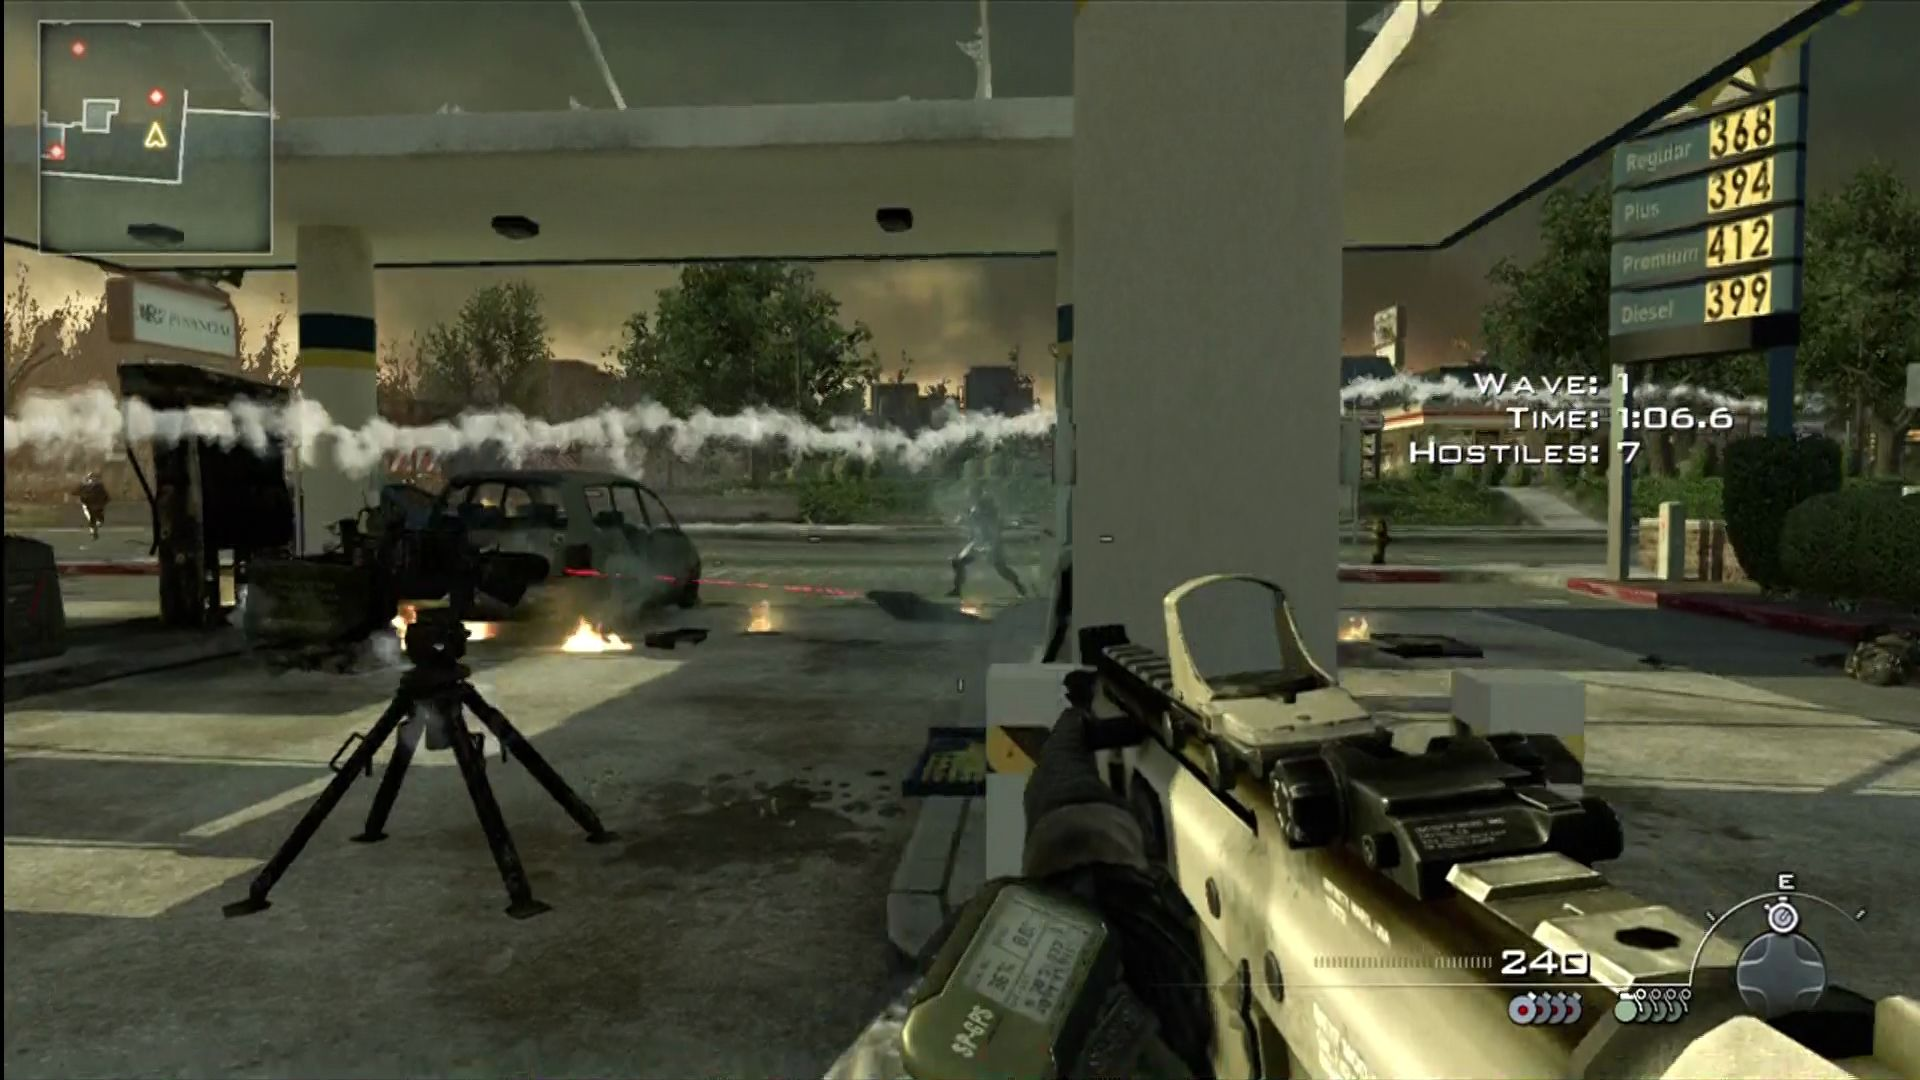 Call of Duty: Modern Warfare 2 Xbox 360 Another Spec Ops mission.